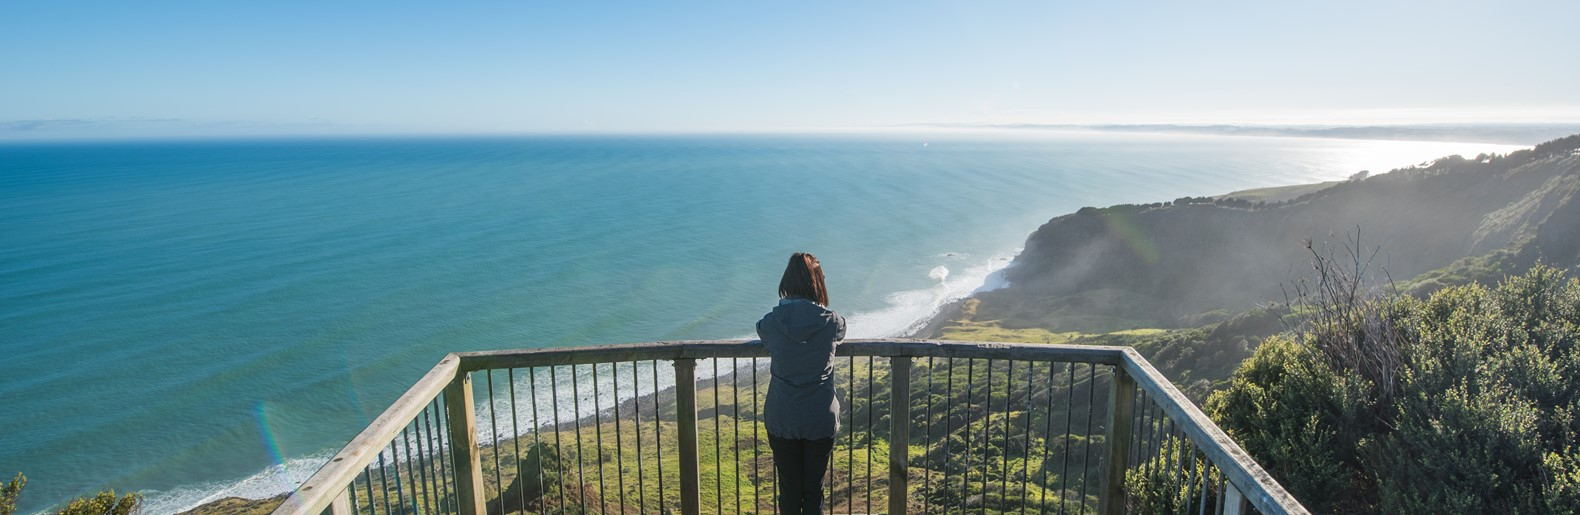 Things to do in Raglan - Te Toto Gorge Walk